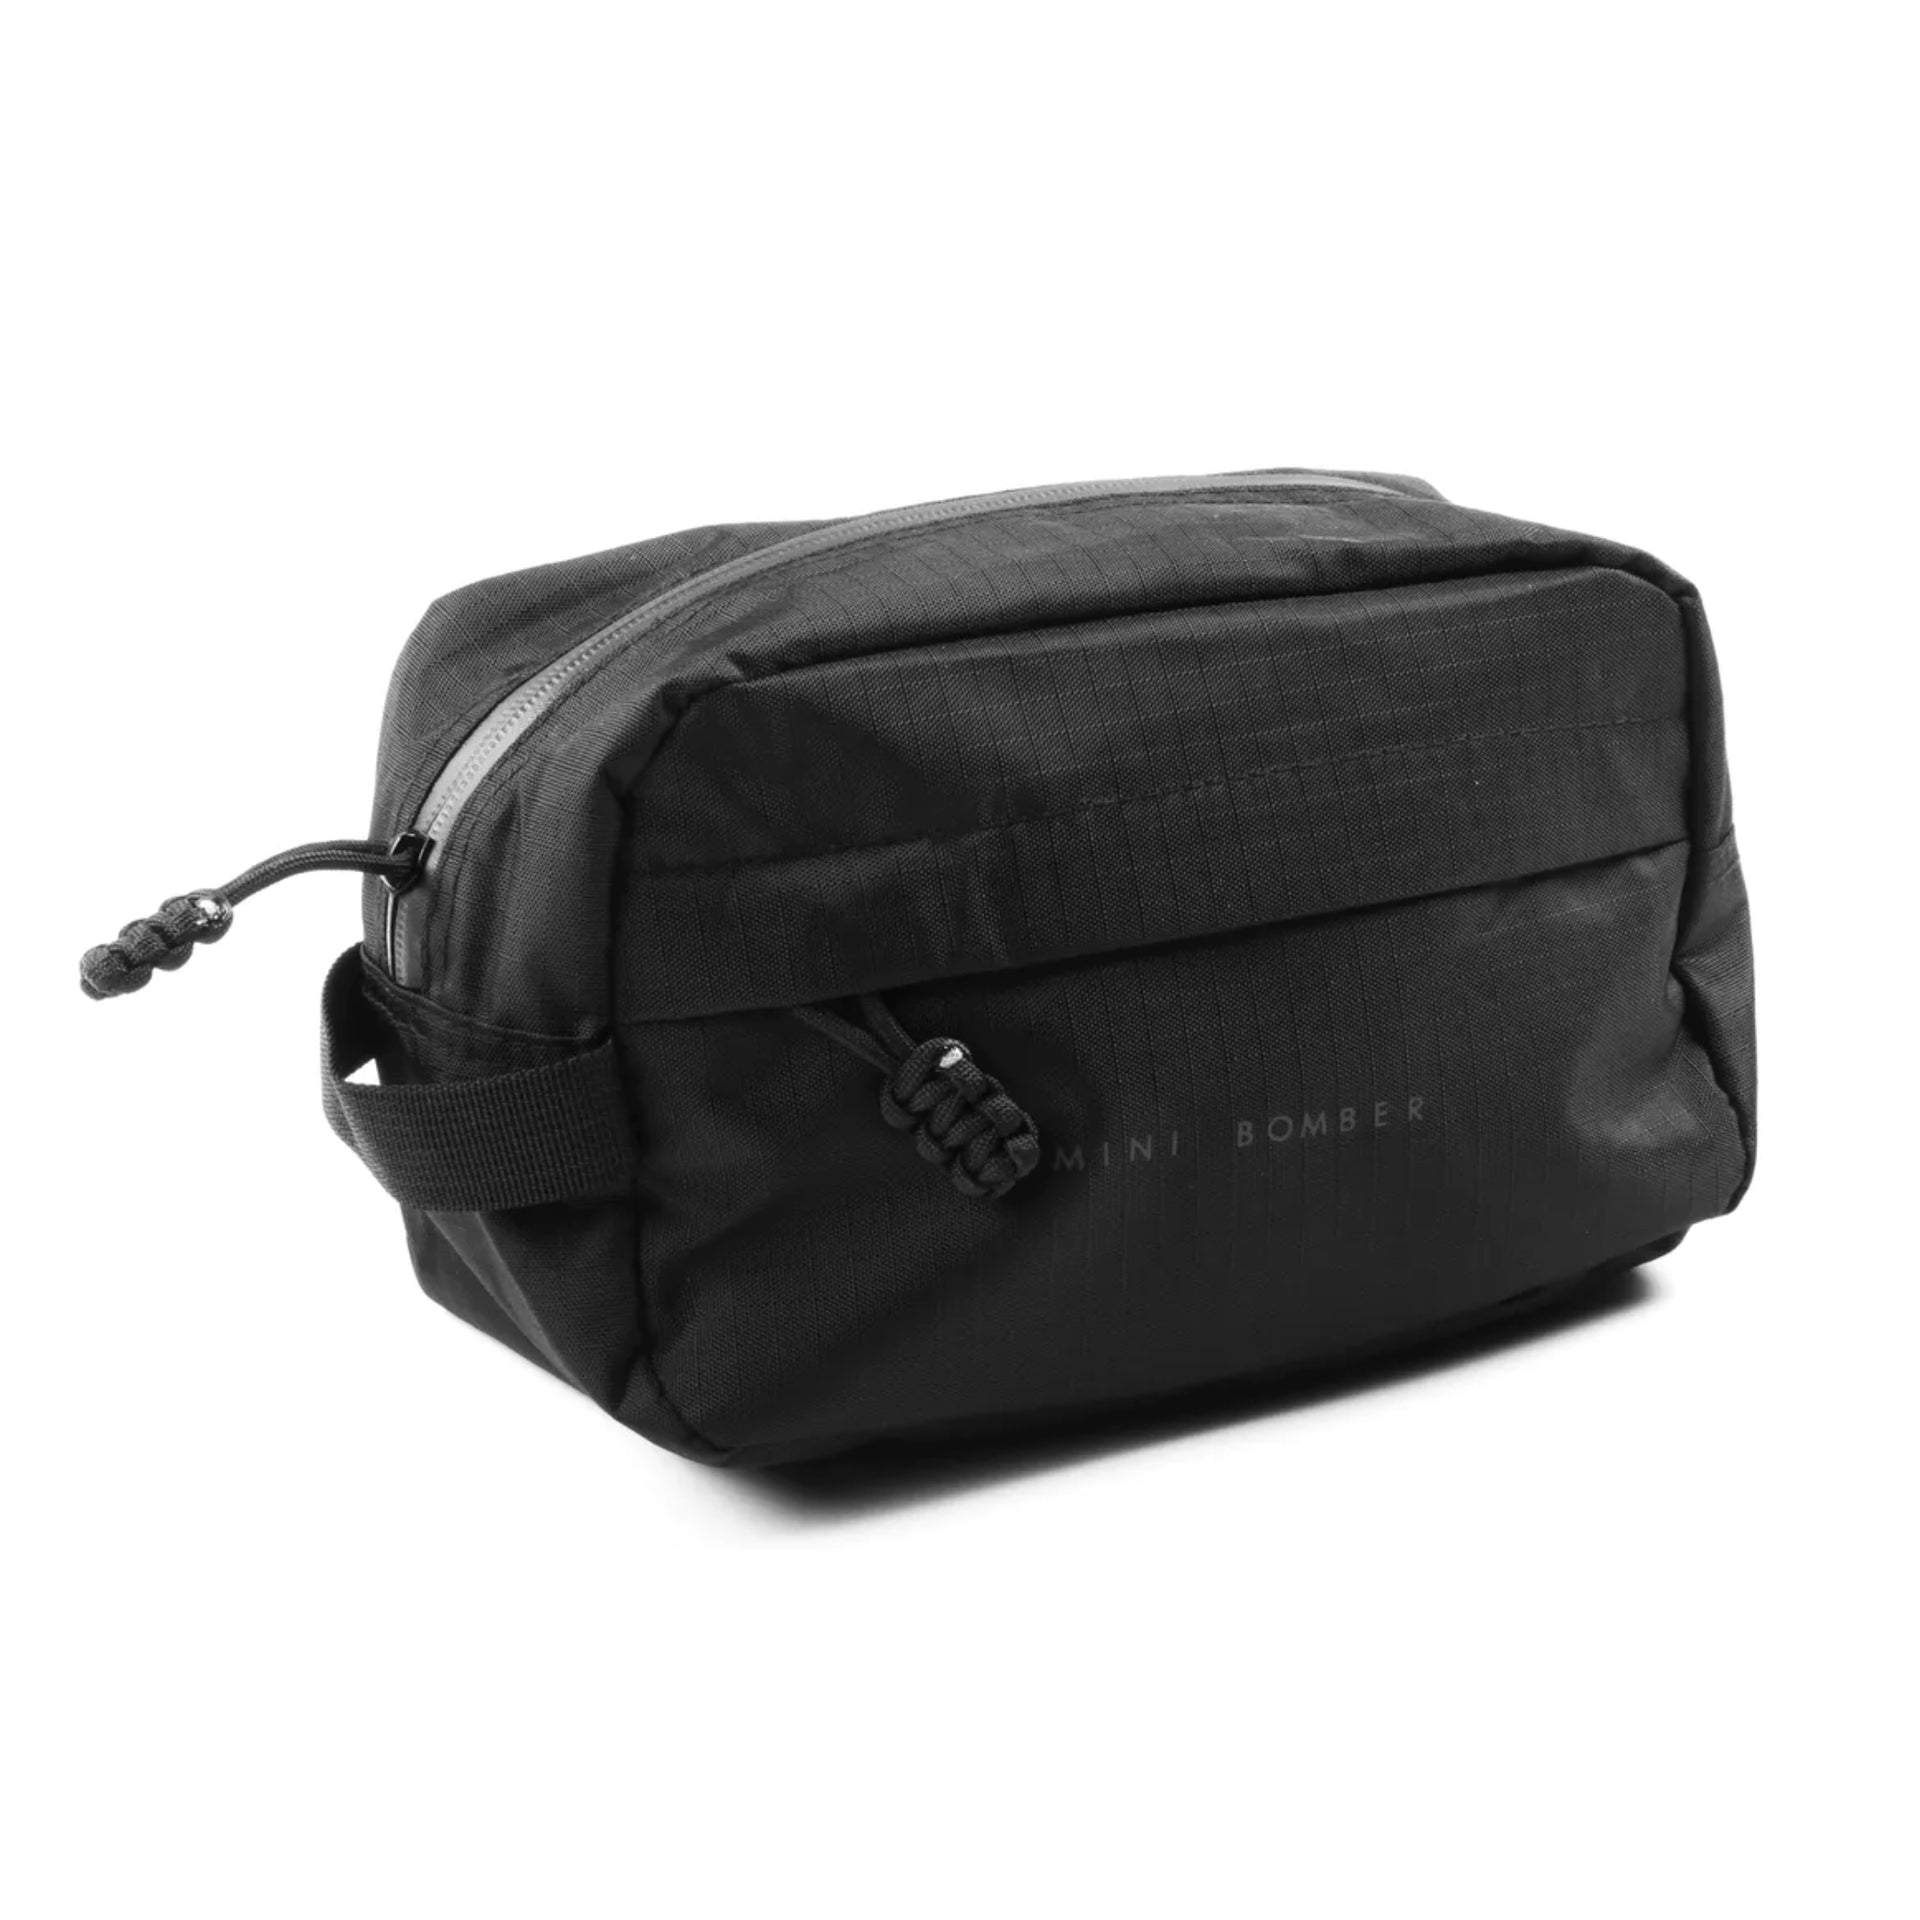 Mini Bomber Dopp Bag